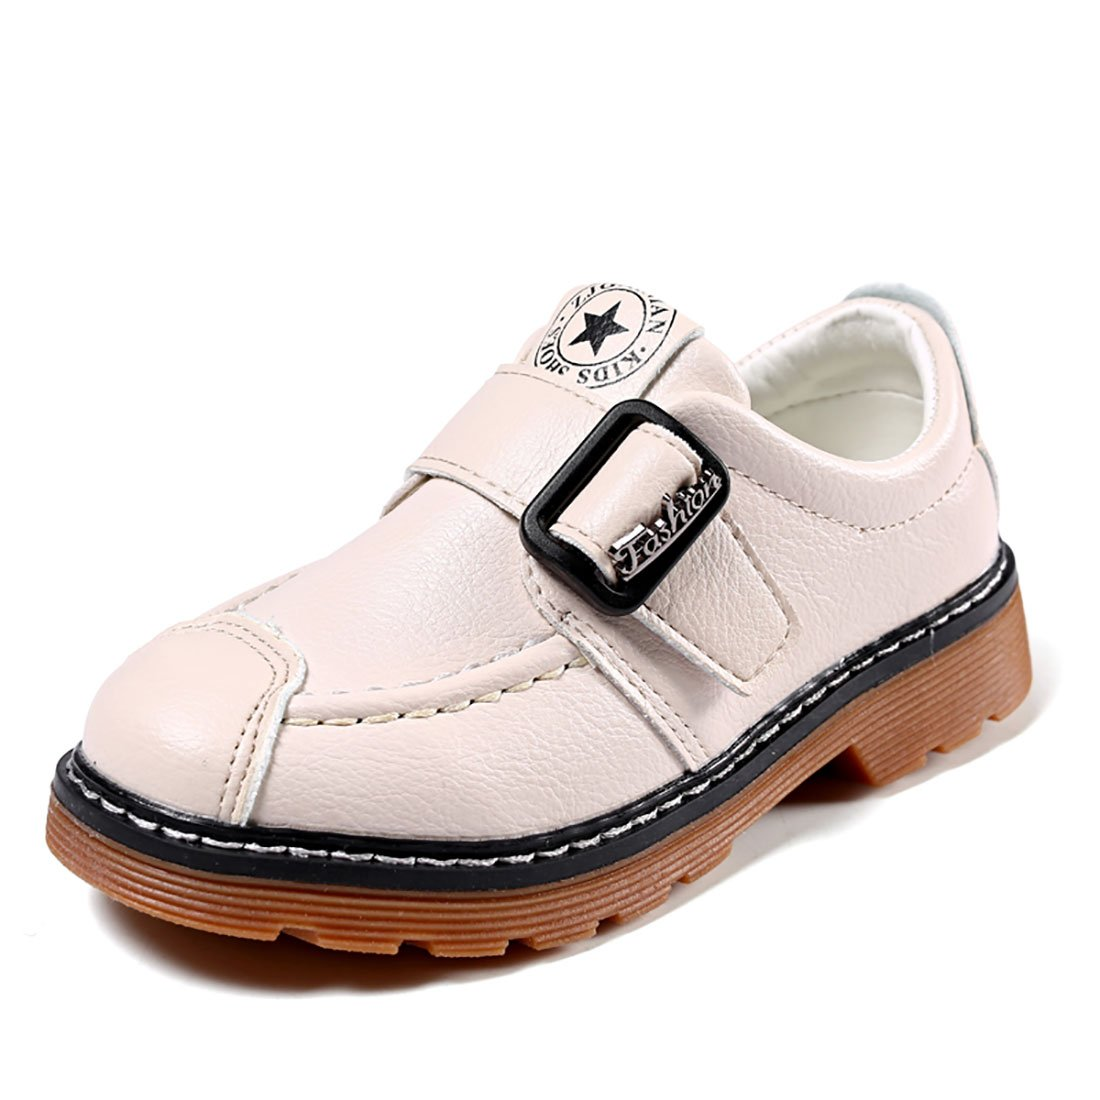 YIBLBOX Children Boys Girls PU Leather Hook and Loop Loafers Flats School Uniform Shoes